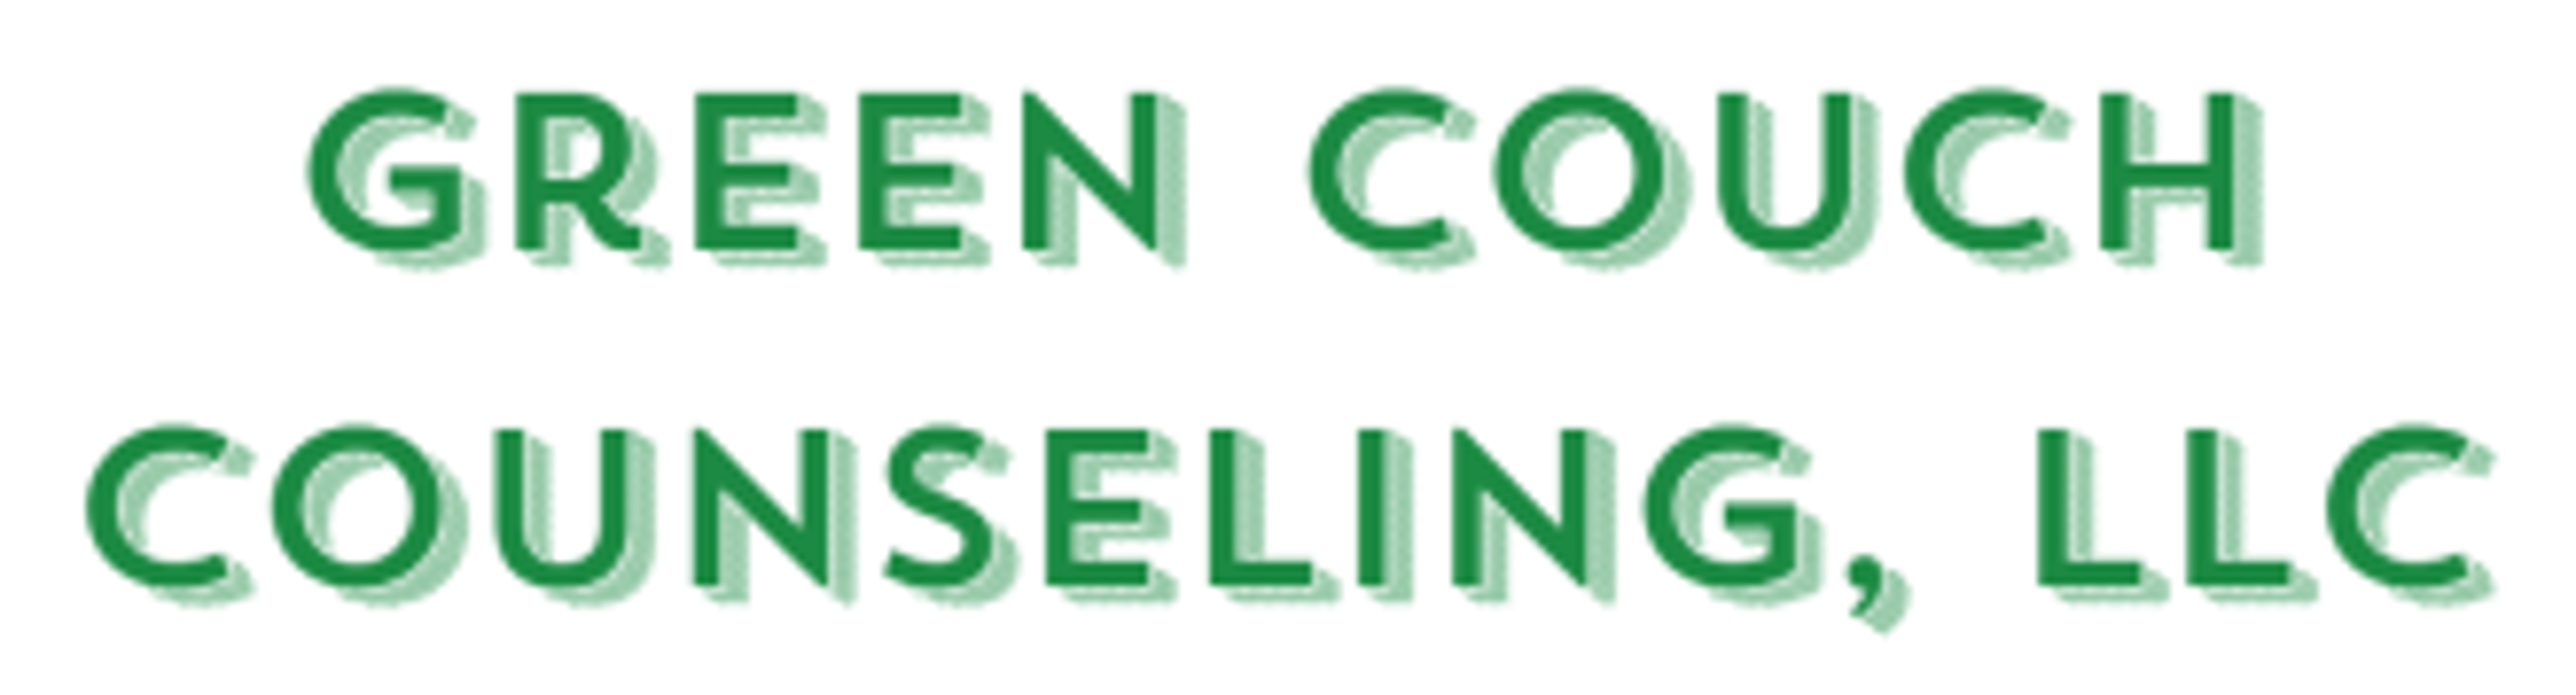 Green Couch Counseling - Denver, CO